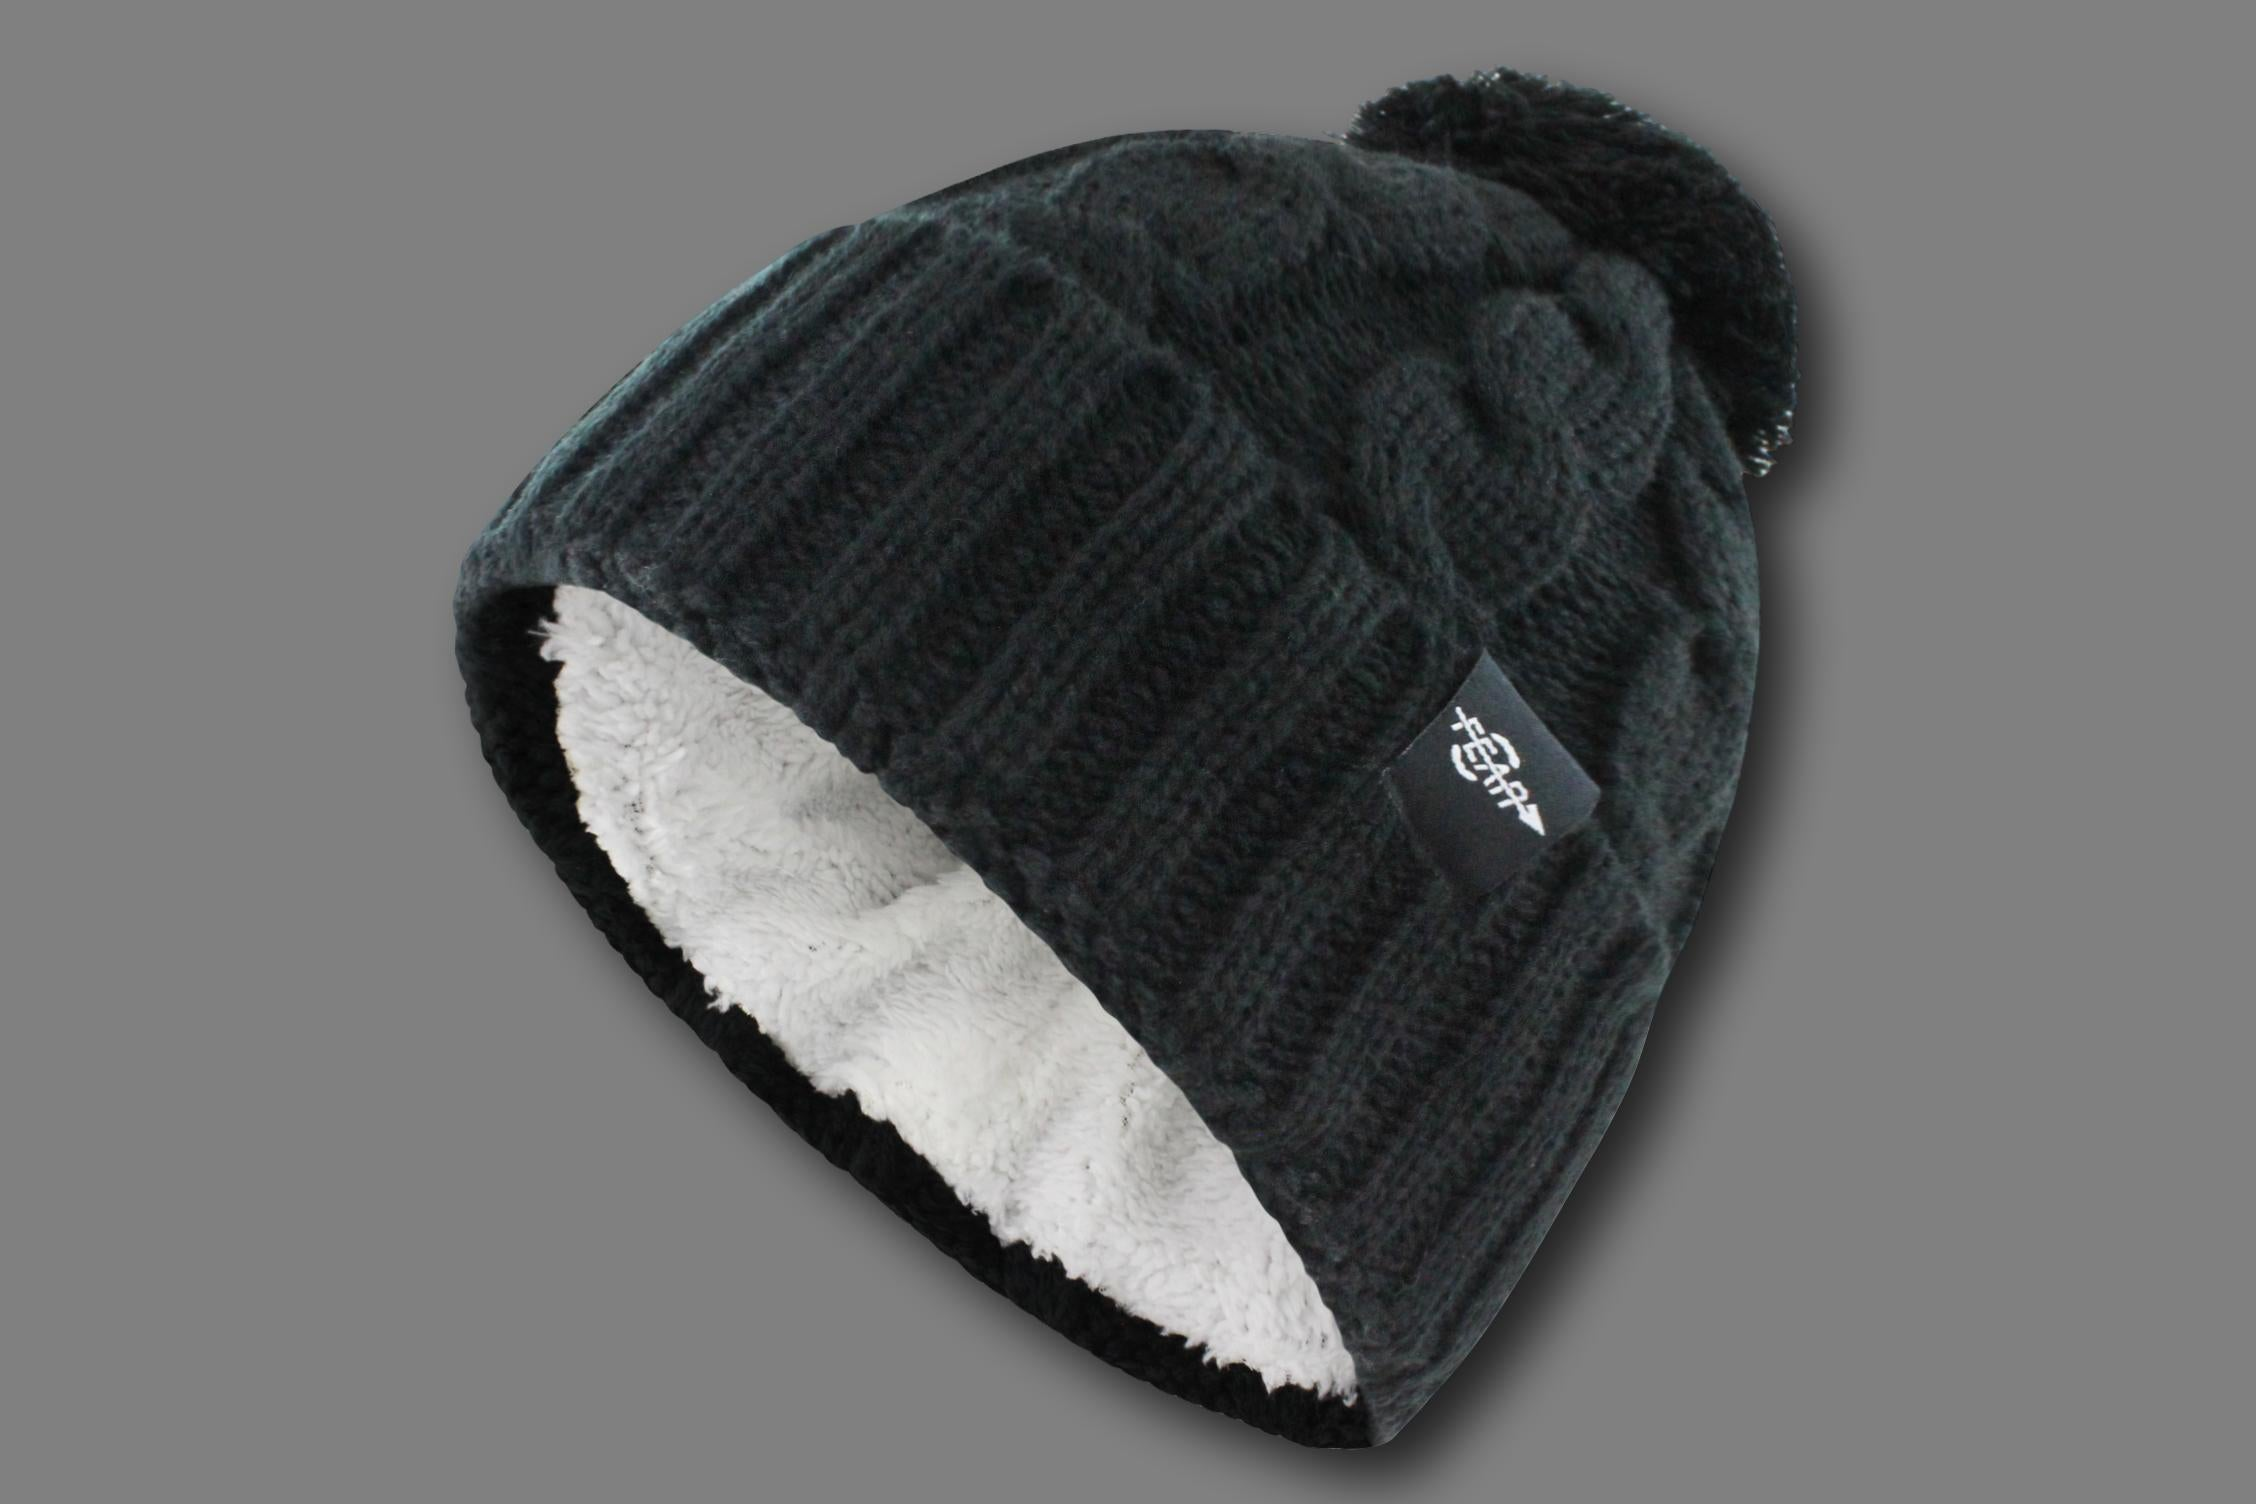 FEAR0 PLUSH INSULATED EXTREME COLD GEAR WOMENS BLACK CUFF KNIT POM BEANIE HAT - Fear0